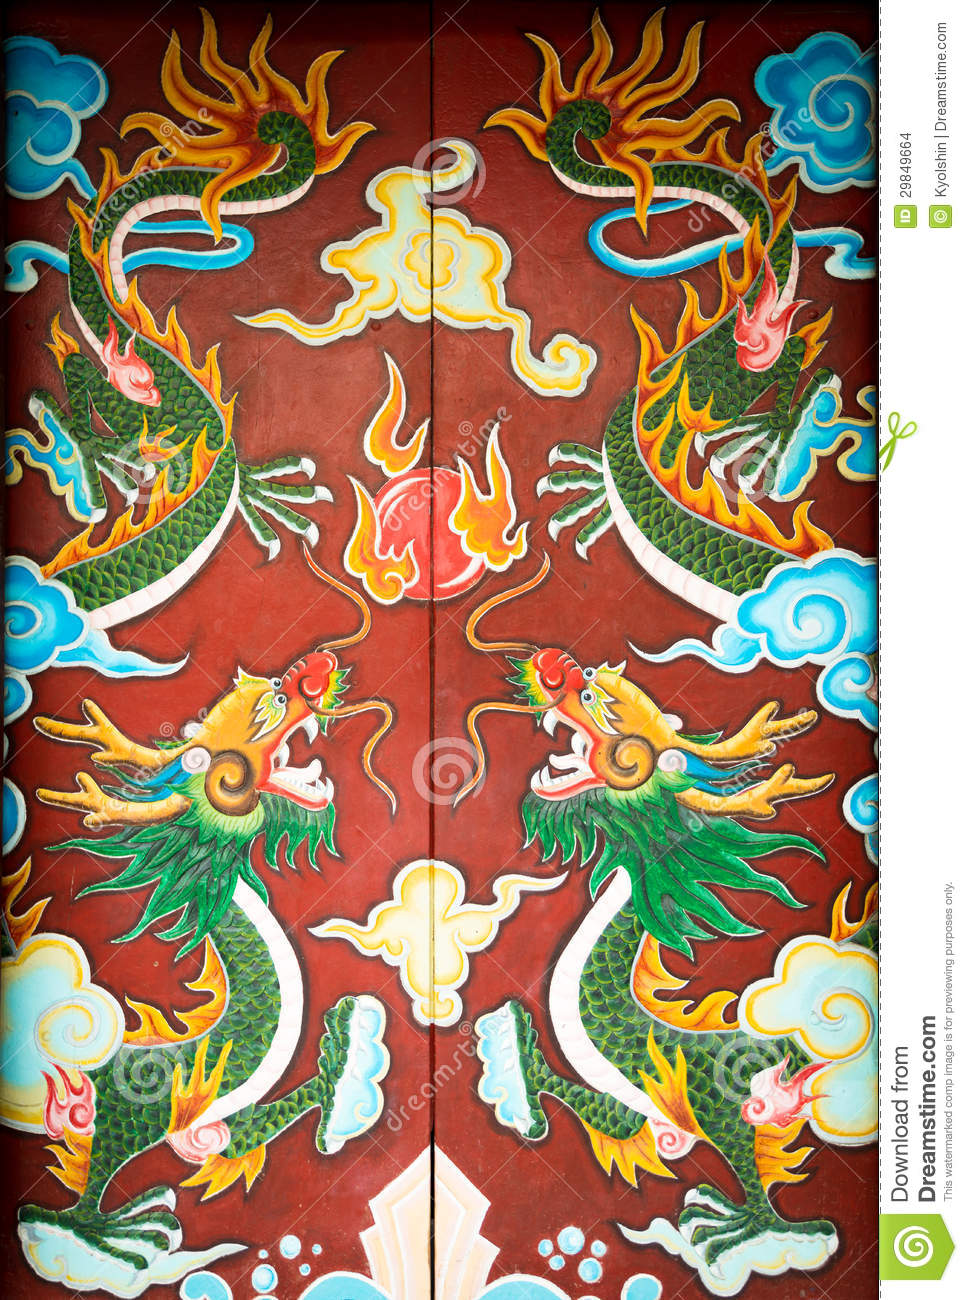 Royalty-Free Stock Photo & Colorful Door With Symmetrical Dragon Painting. Stock Photo ... pezcame.com